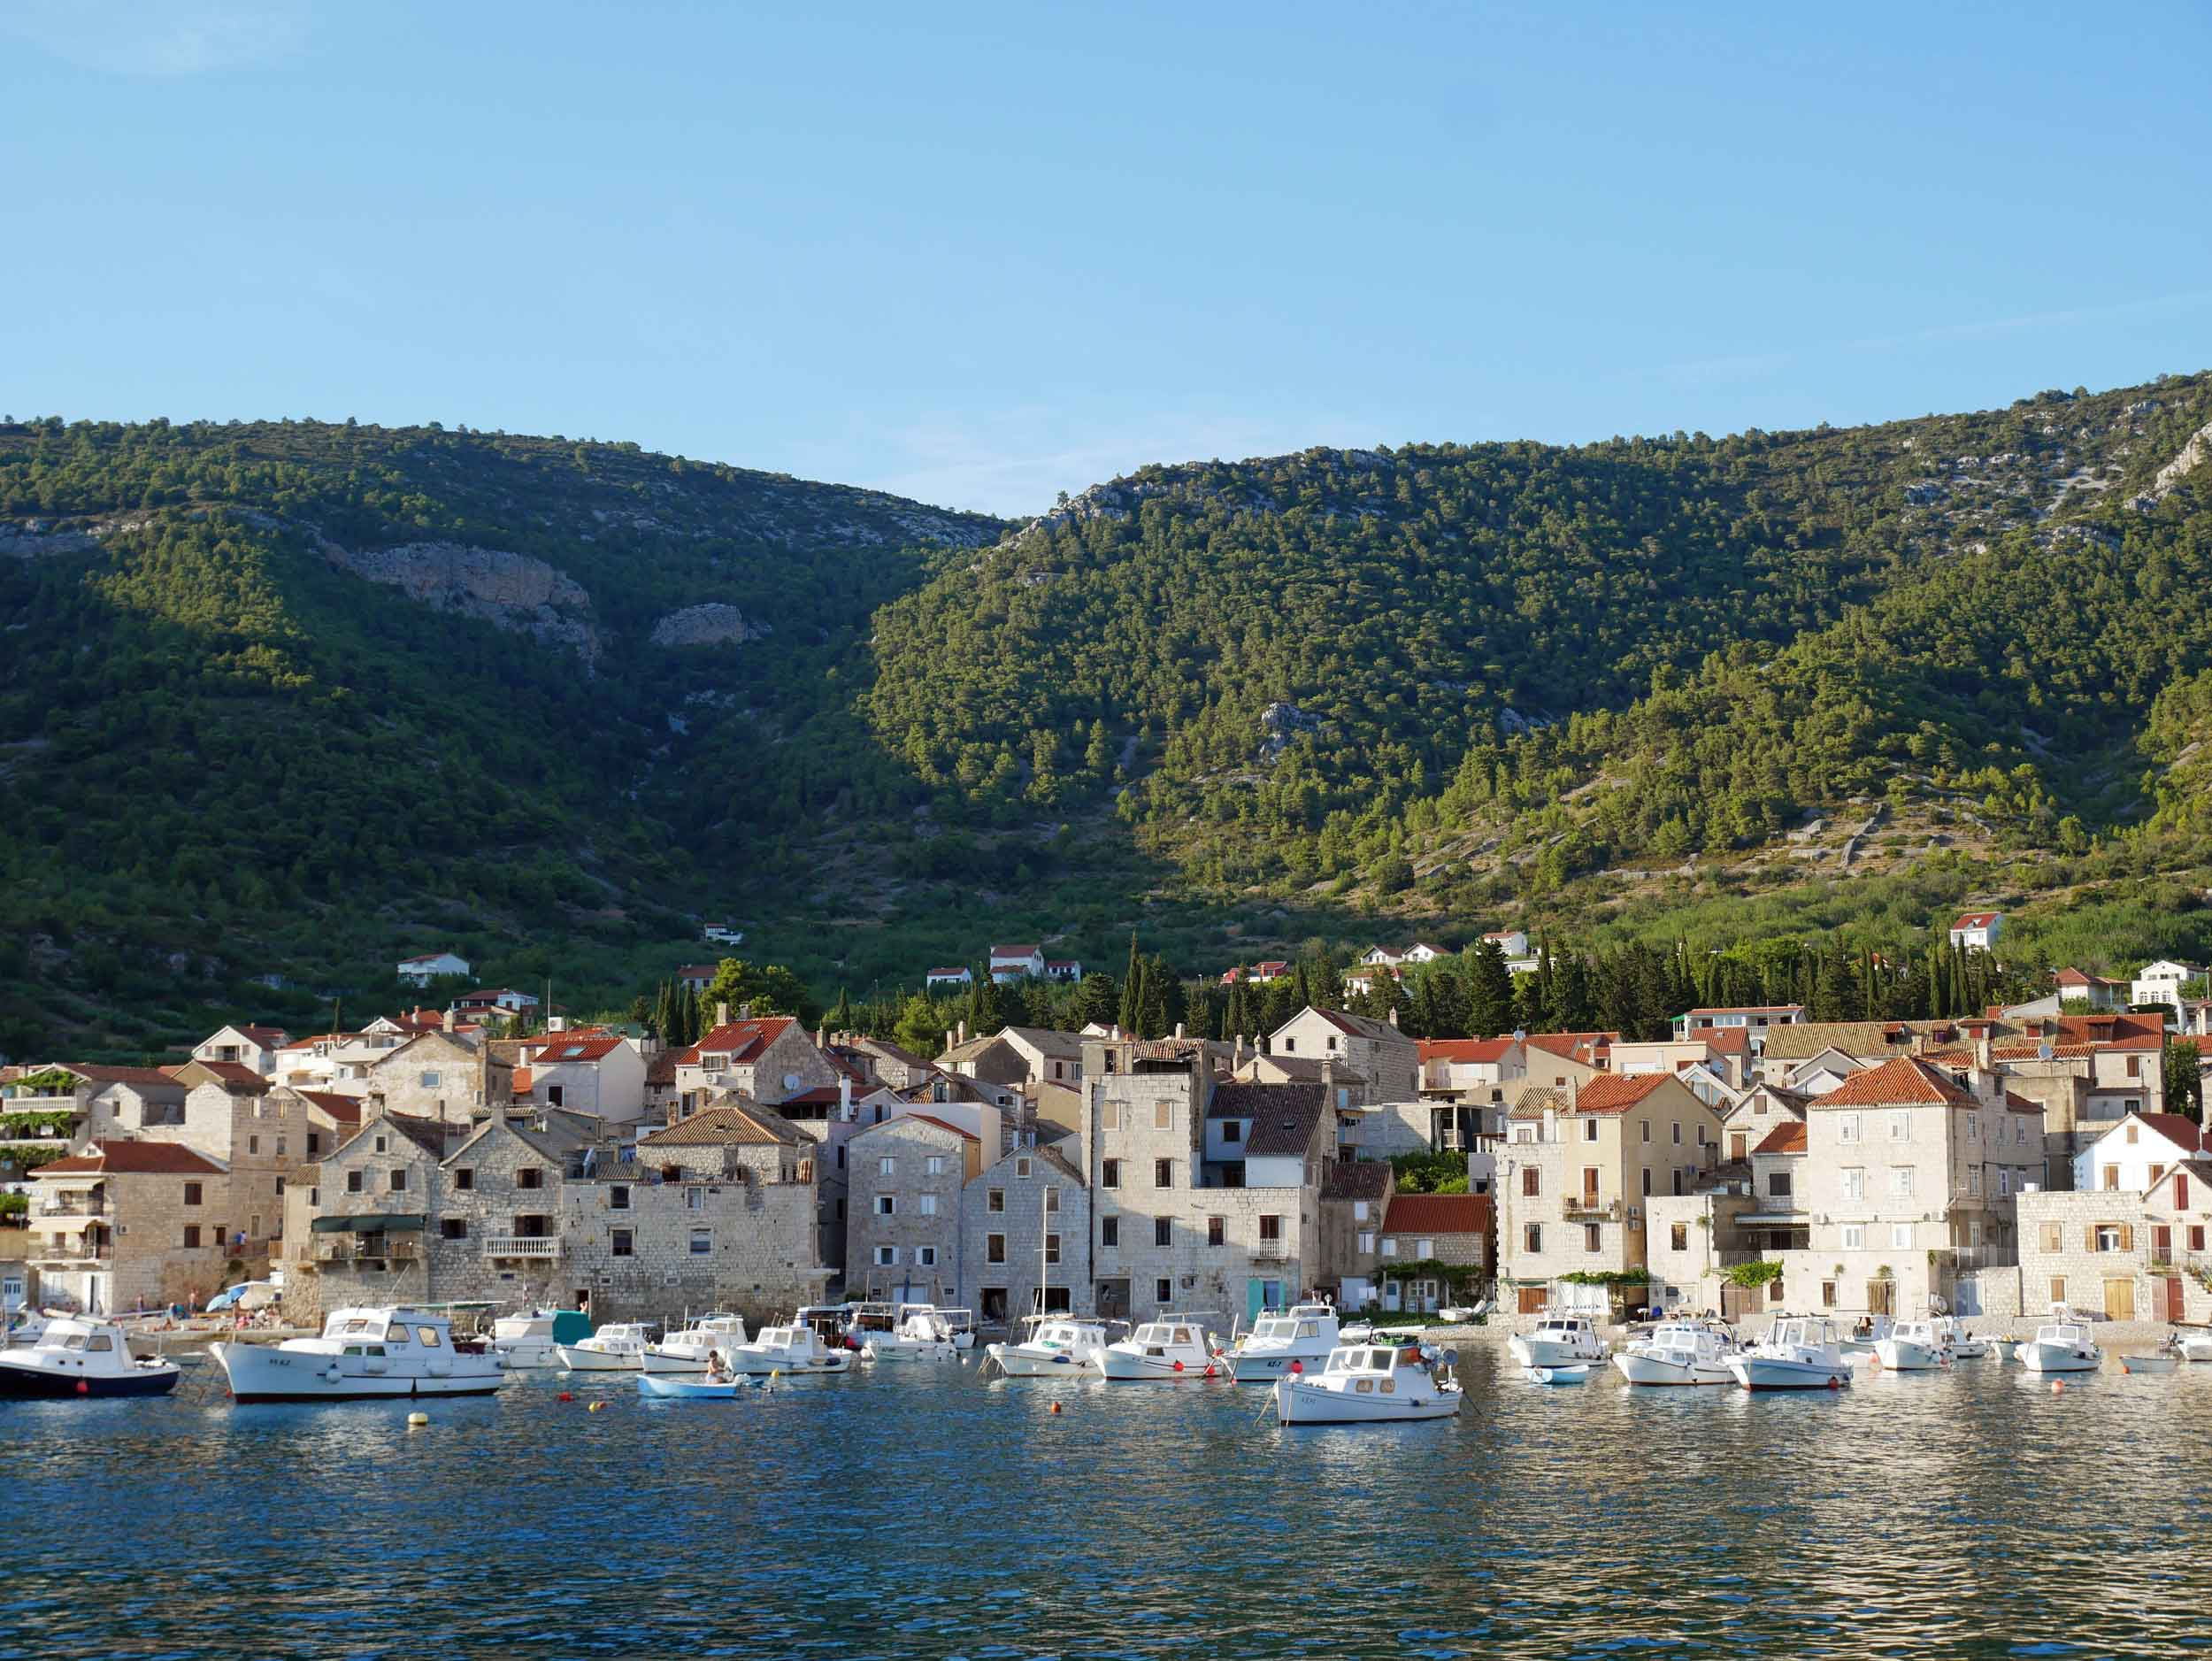 From the 'sweet life' in Italy, we arrived to busy Split, Croatia, and took a ferry to the farthest village on the farthest island off the Dalmatian Coast, Komiža, Vis (July 28).